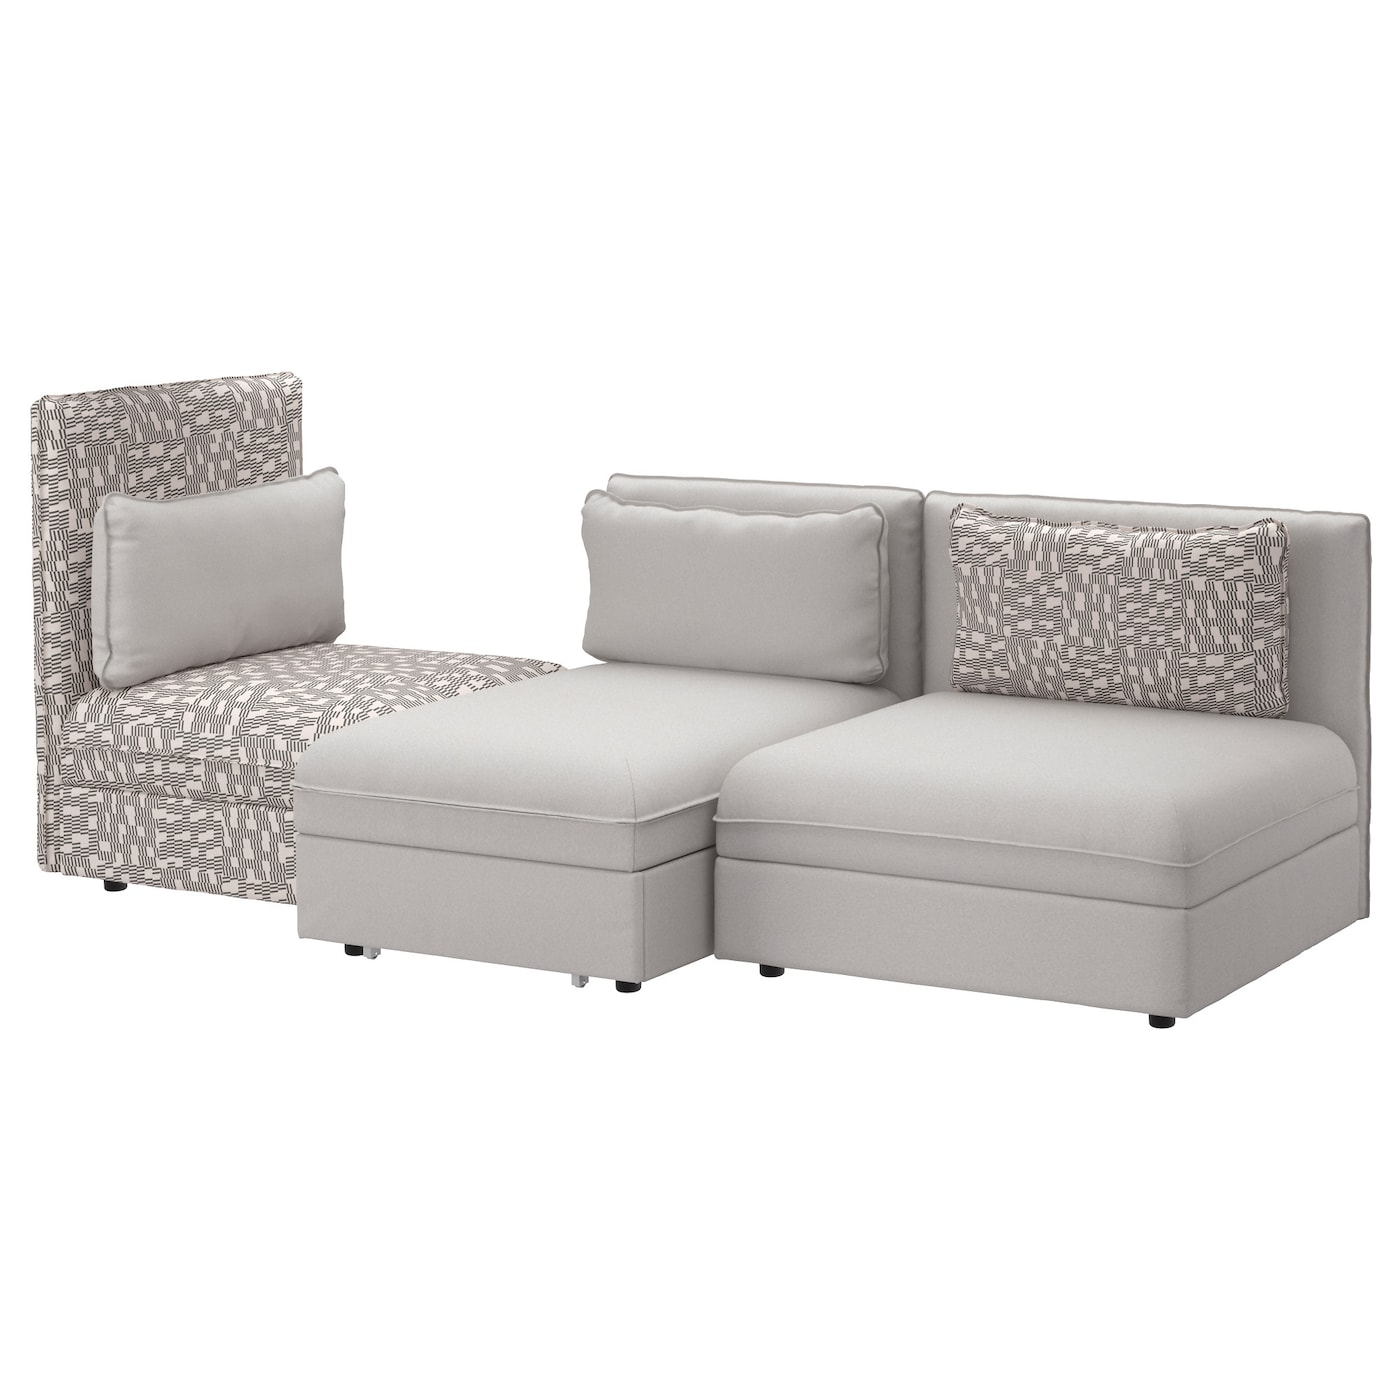 vallentuna canap 3 places couch orrsta gris clair. Black Bedroom Furniture Sets. Home Design Ideas